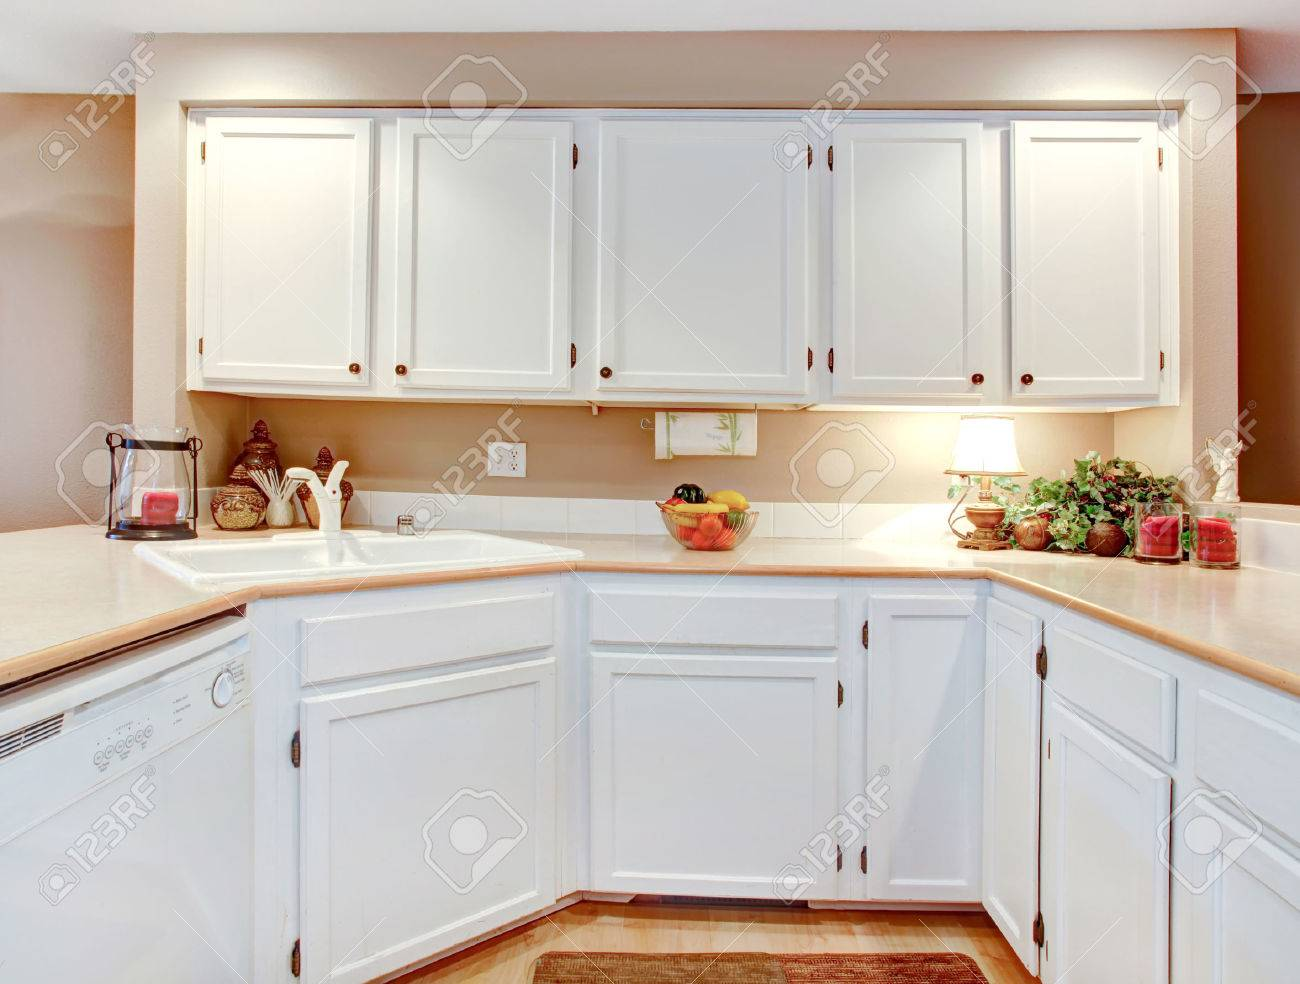 Bright Kitchen Bright Kitchen With White Wooden Cabinets And Beige Counter Tops